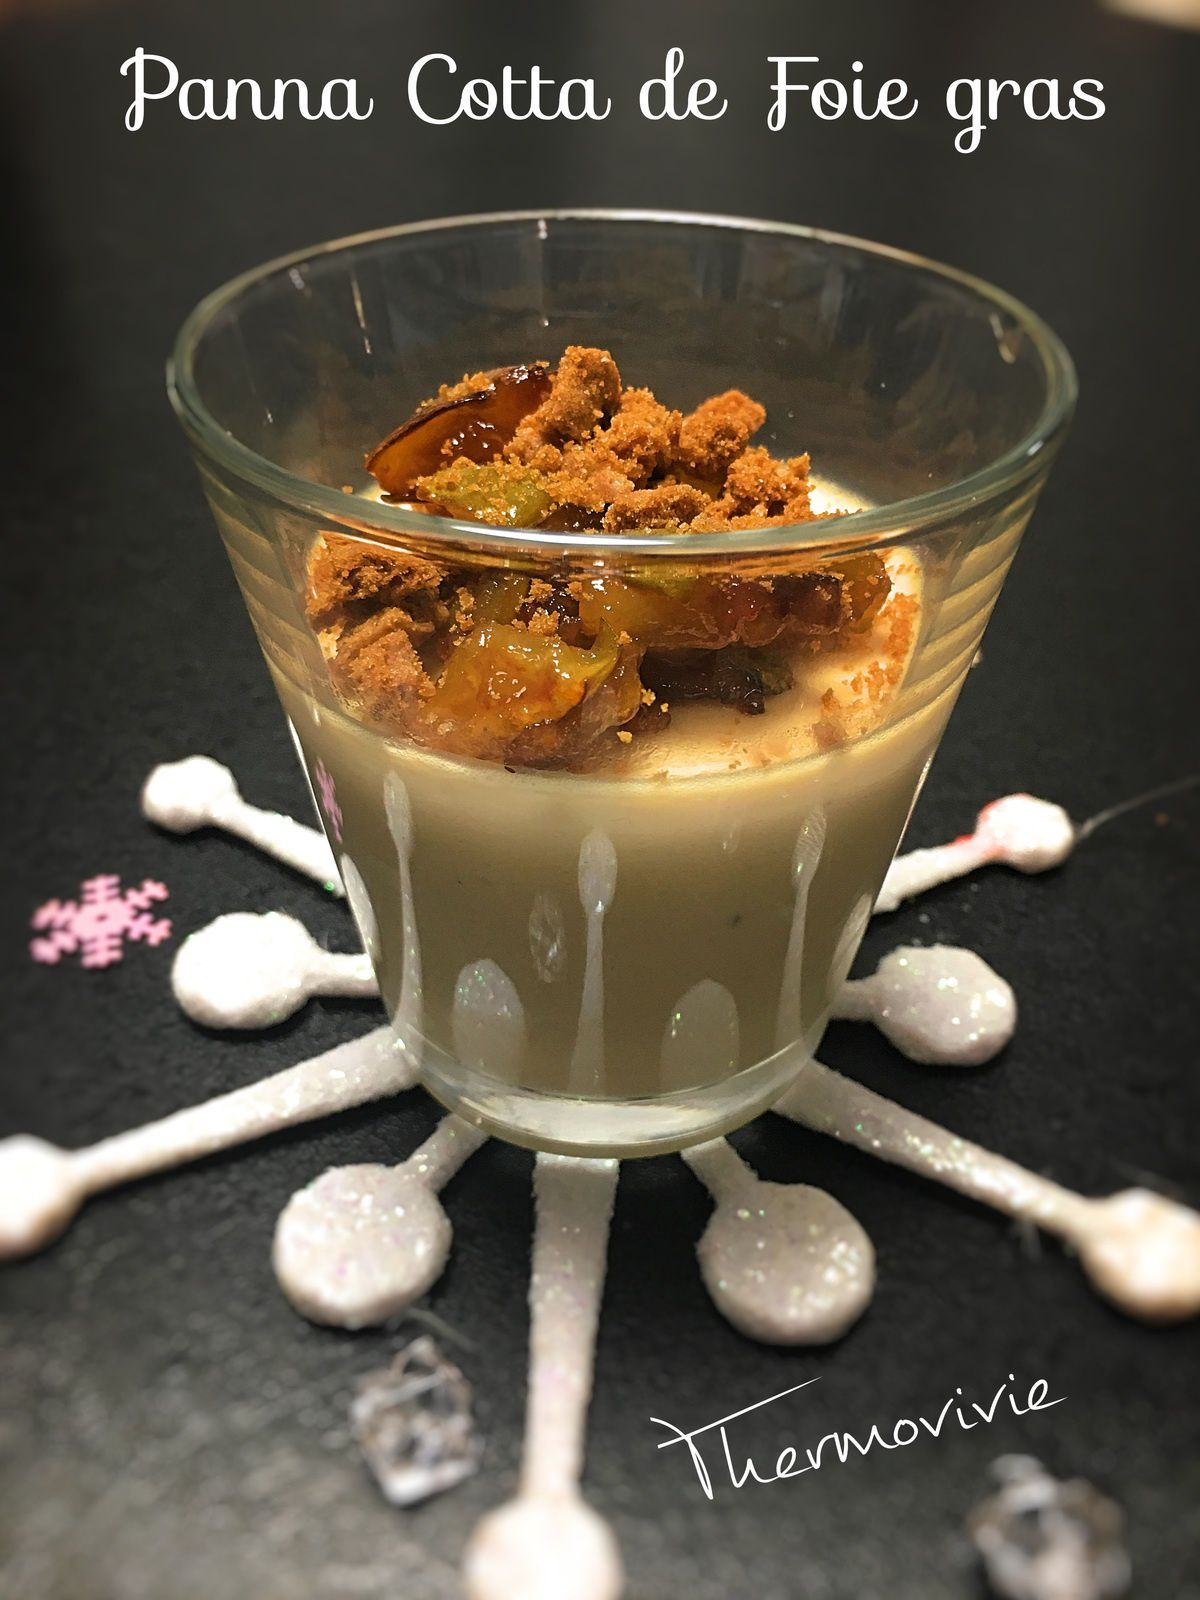 panna cotta de foie gras recette au thermomix thermovivie. Black Bedroom Furniture Sets. Home Design Ideas